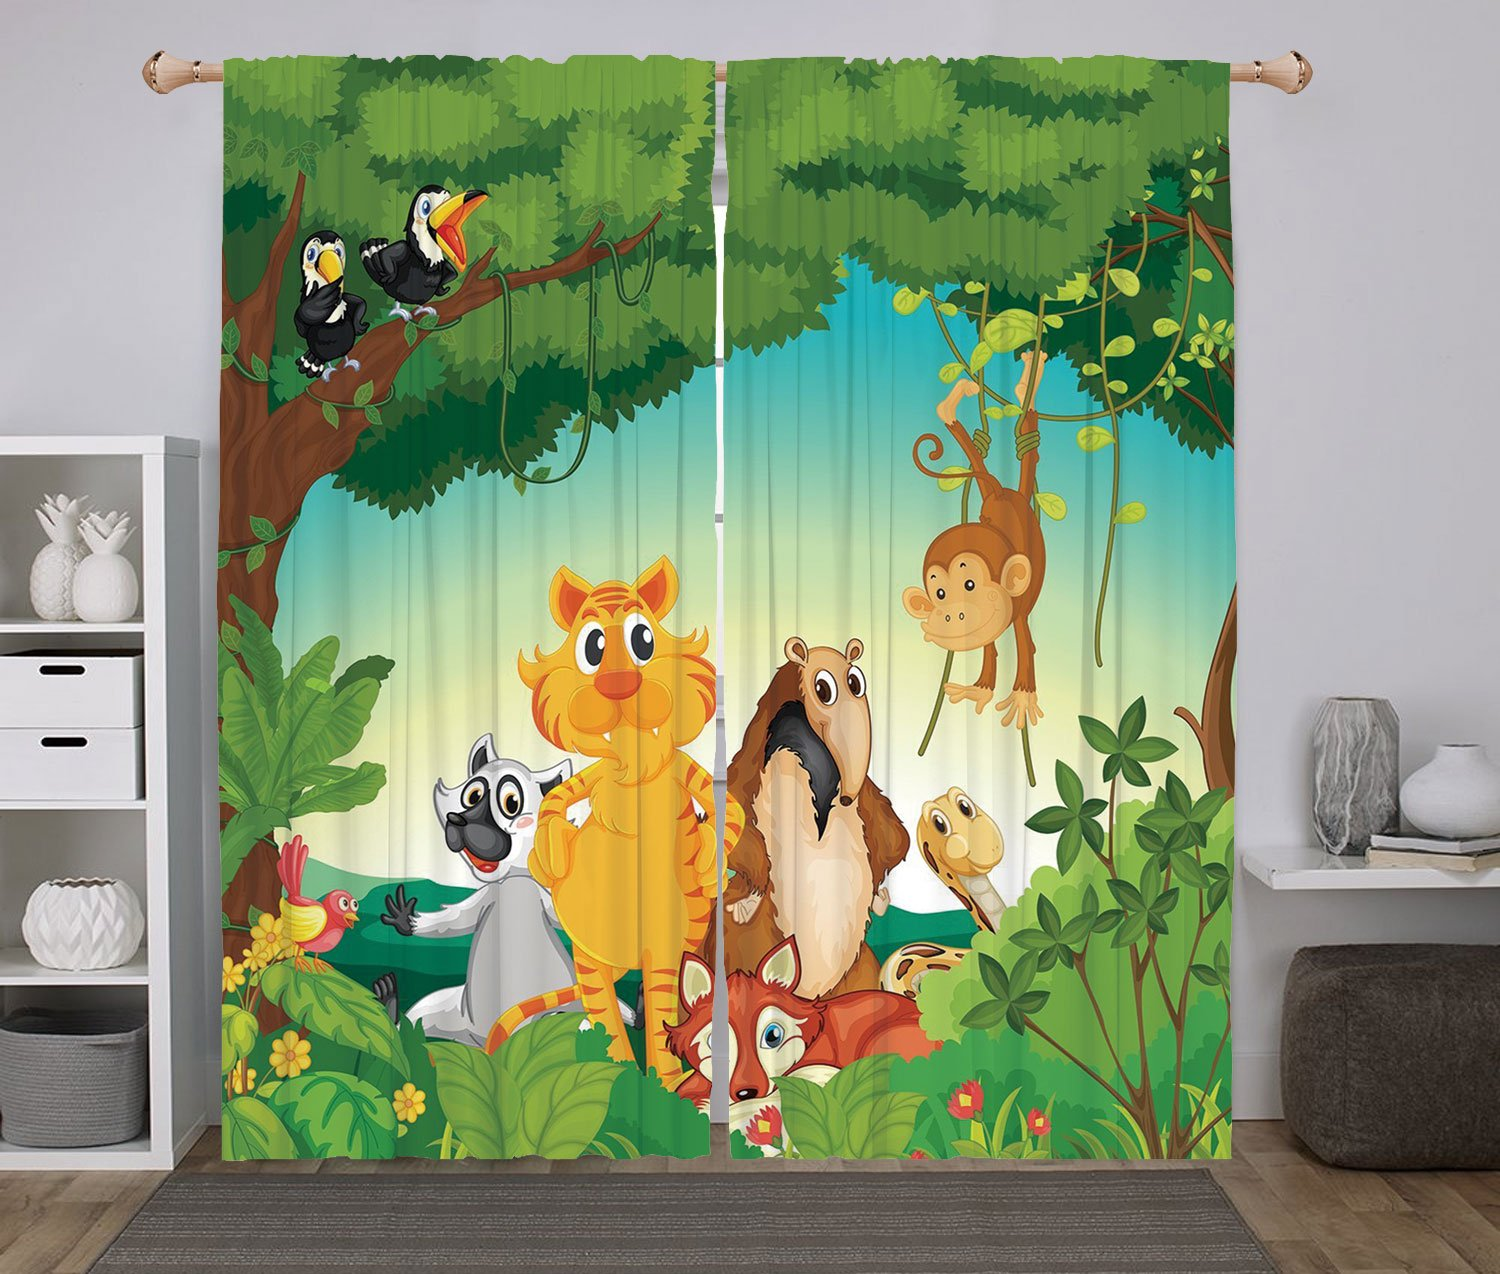 2 Panel Set Window Drapes Kitchen Curtains,Zoo Forest Scene with Different Animals Habitat Jungle Tropical Environment Kids Cartoon Decorative Multicolor,for Bedroom Living Room Dorm Kitchen Cafe